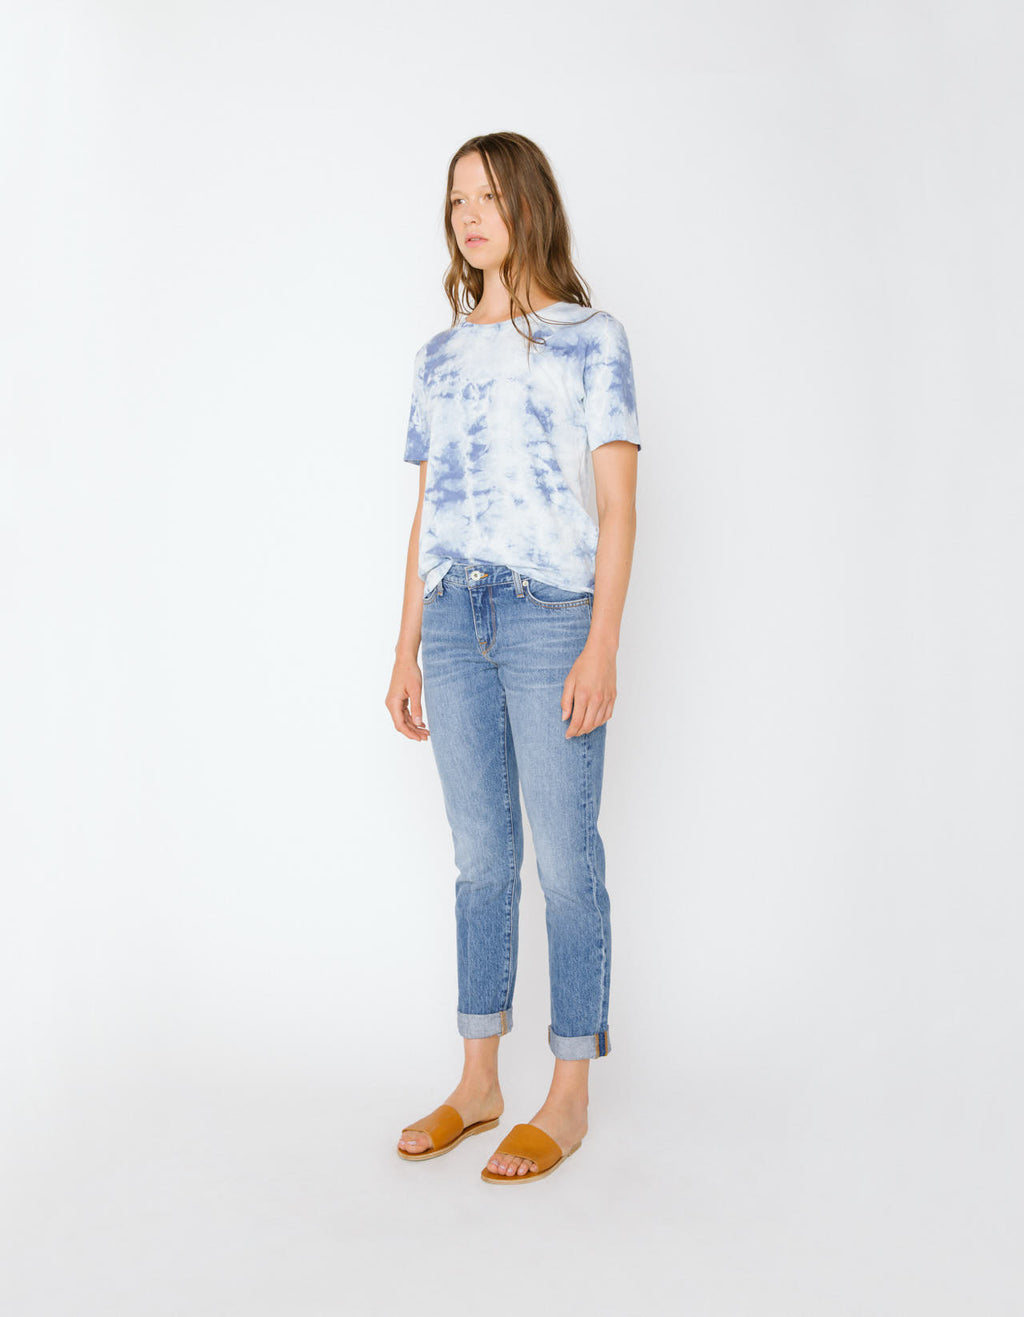 The Short Sleeve Crew Neck Tee in Breeze Tie Dye